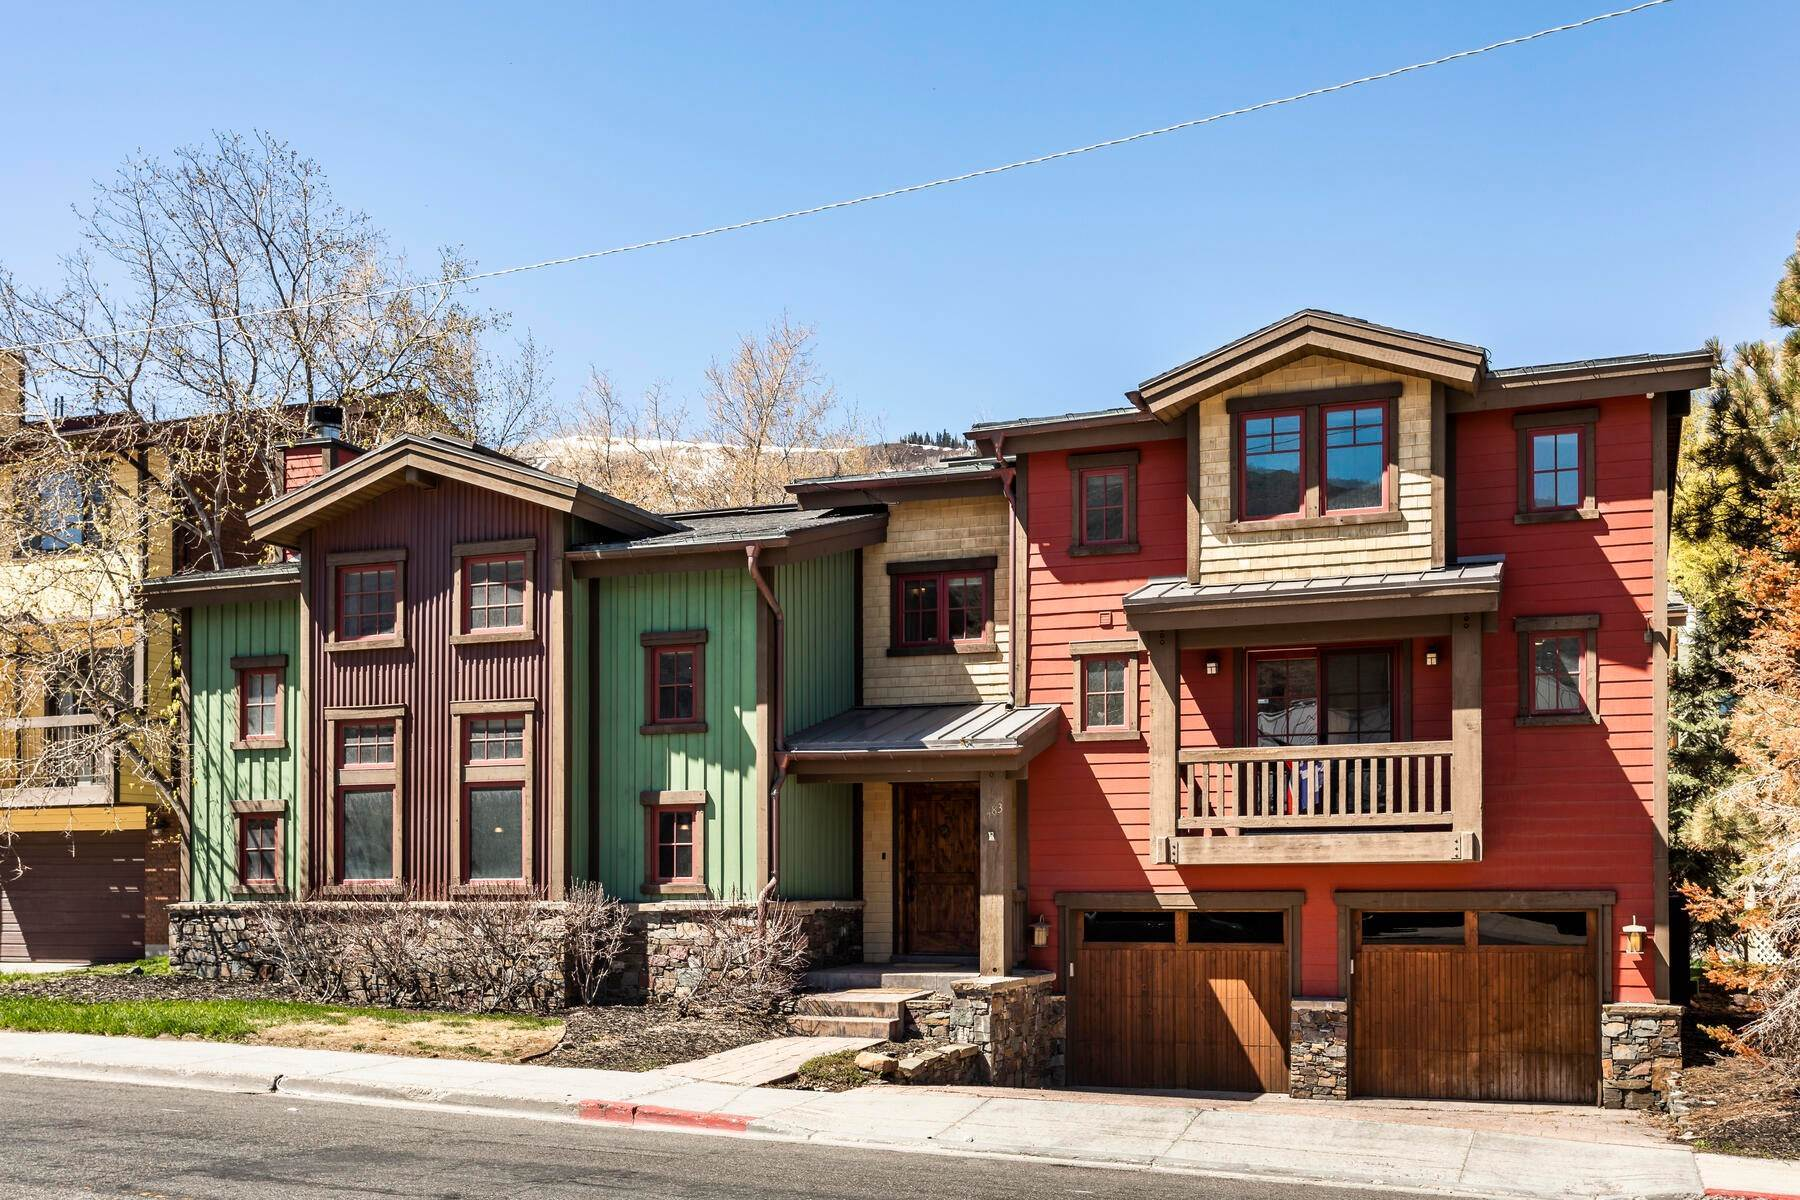 Property for Sale at Rare Large Old Town Home 1483 Park Ave Park City, Utah 84060 United States